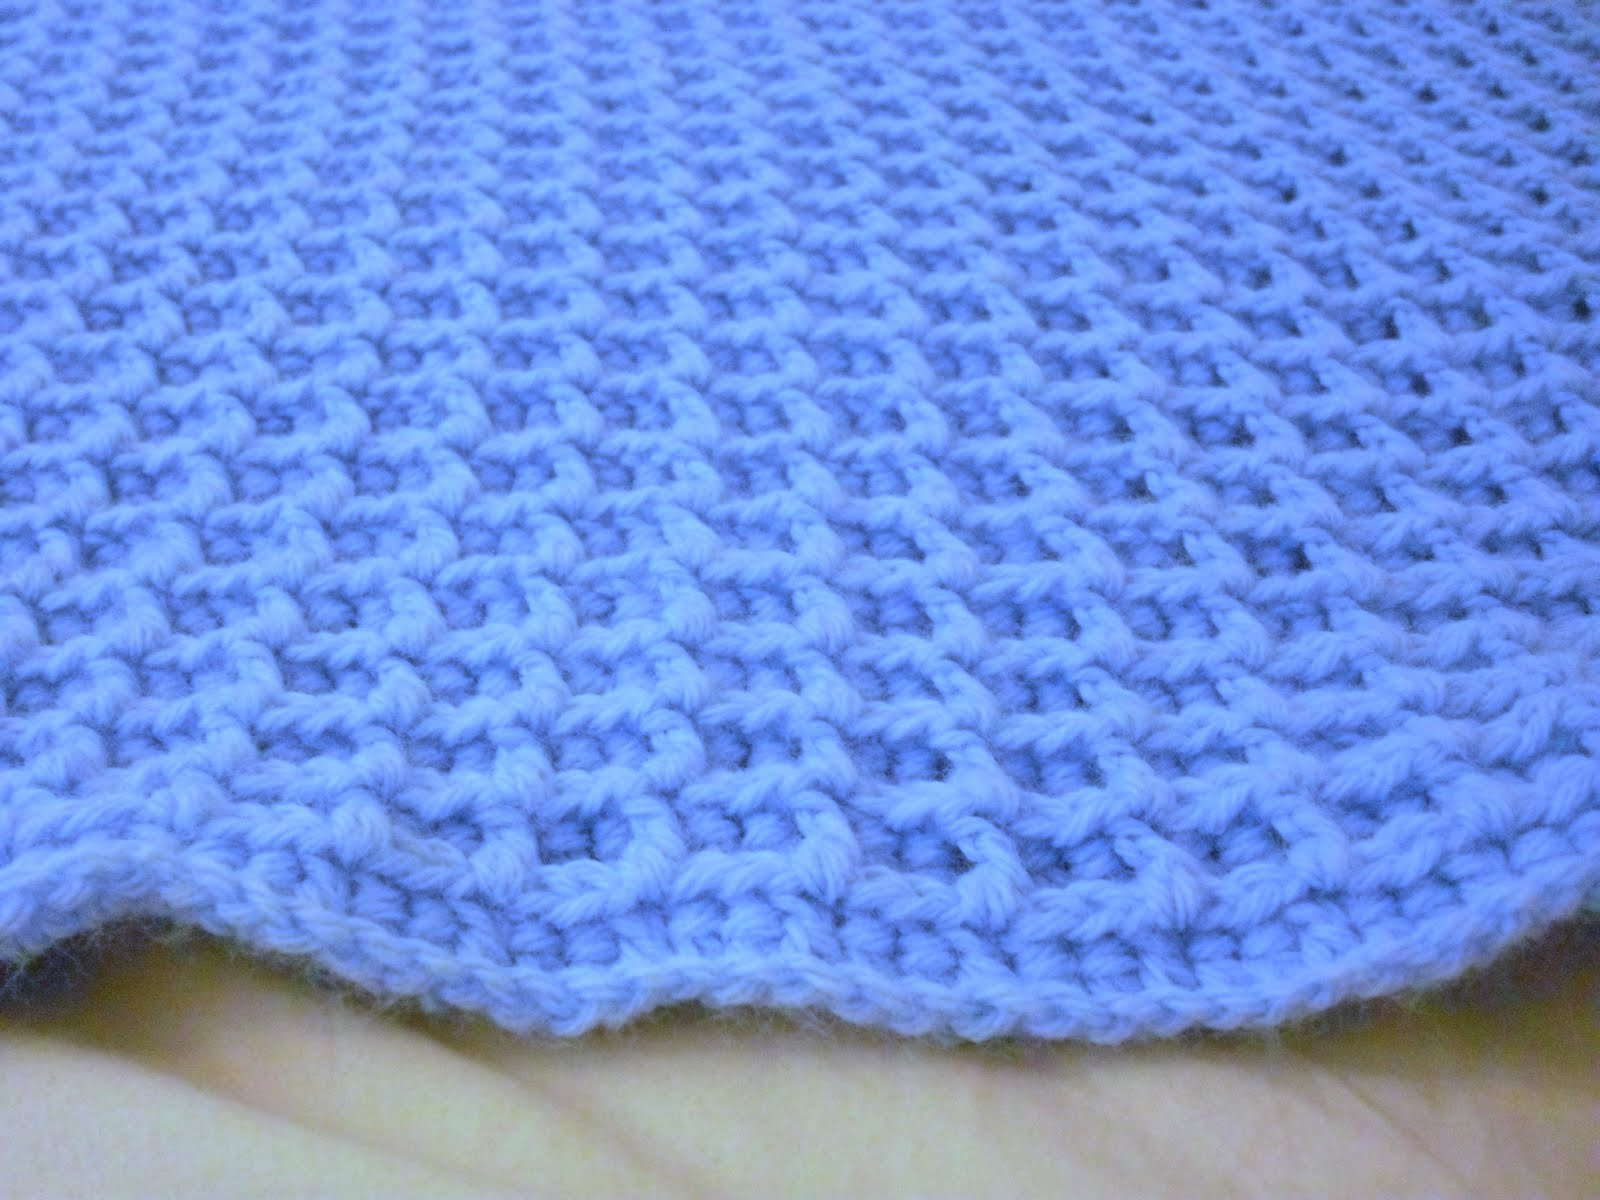 Crochet ripple baby blanket free pattern car pictures